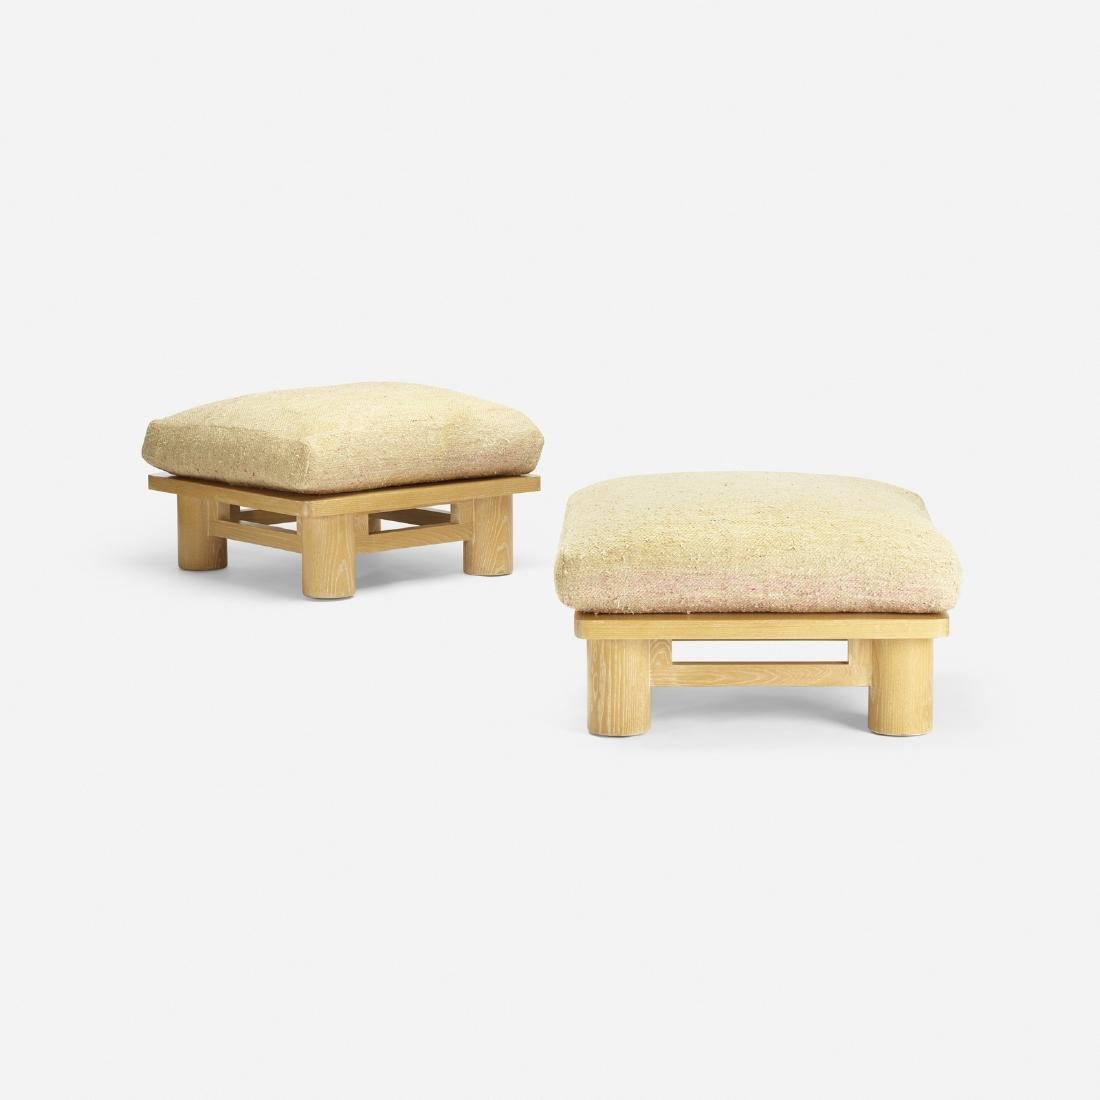 Karl Springer, Dowelwood ottomans, pair